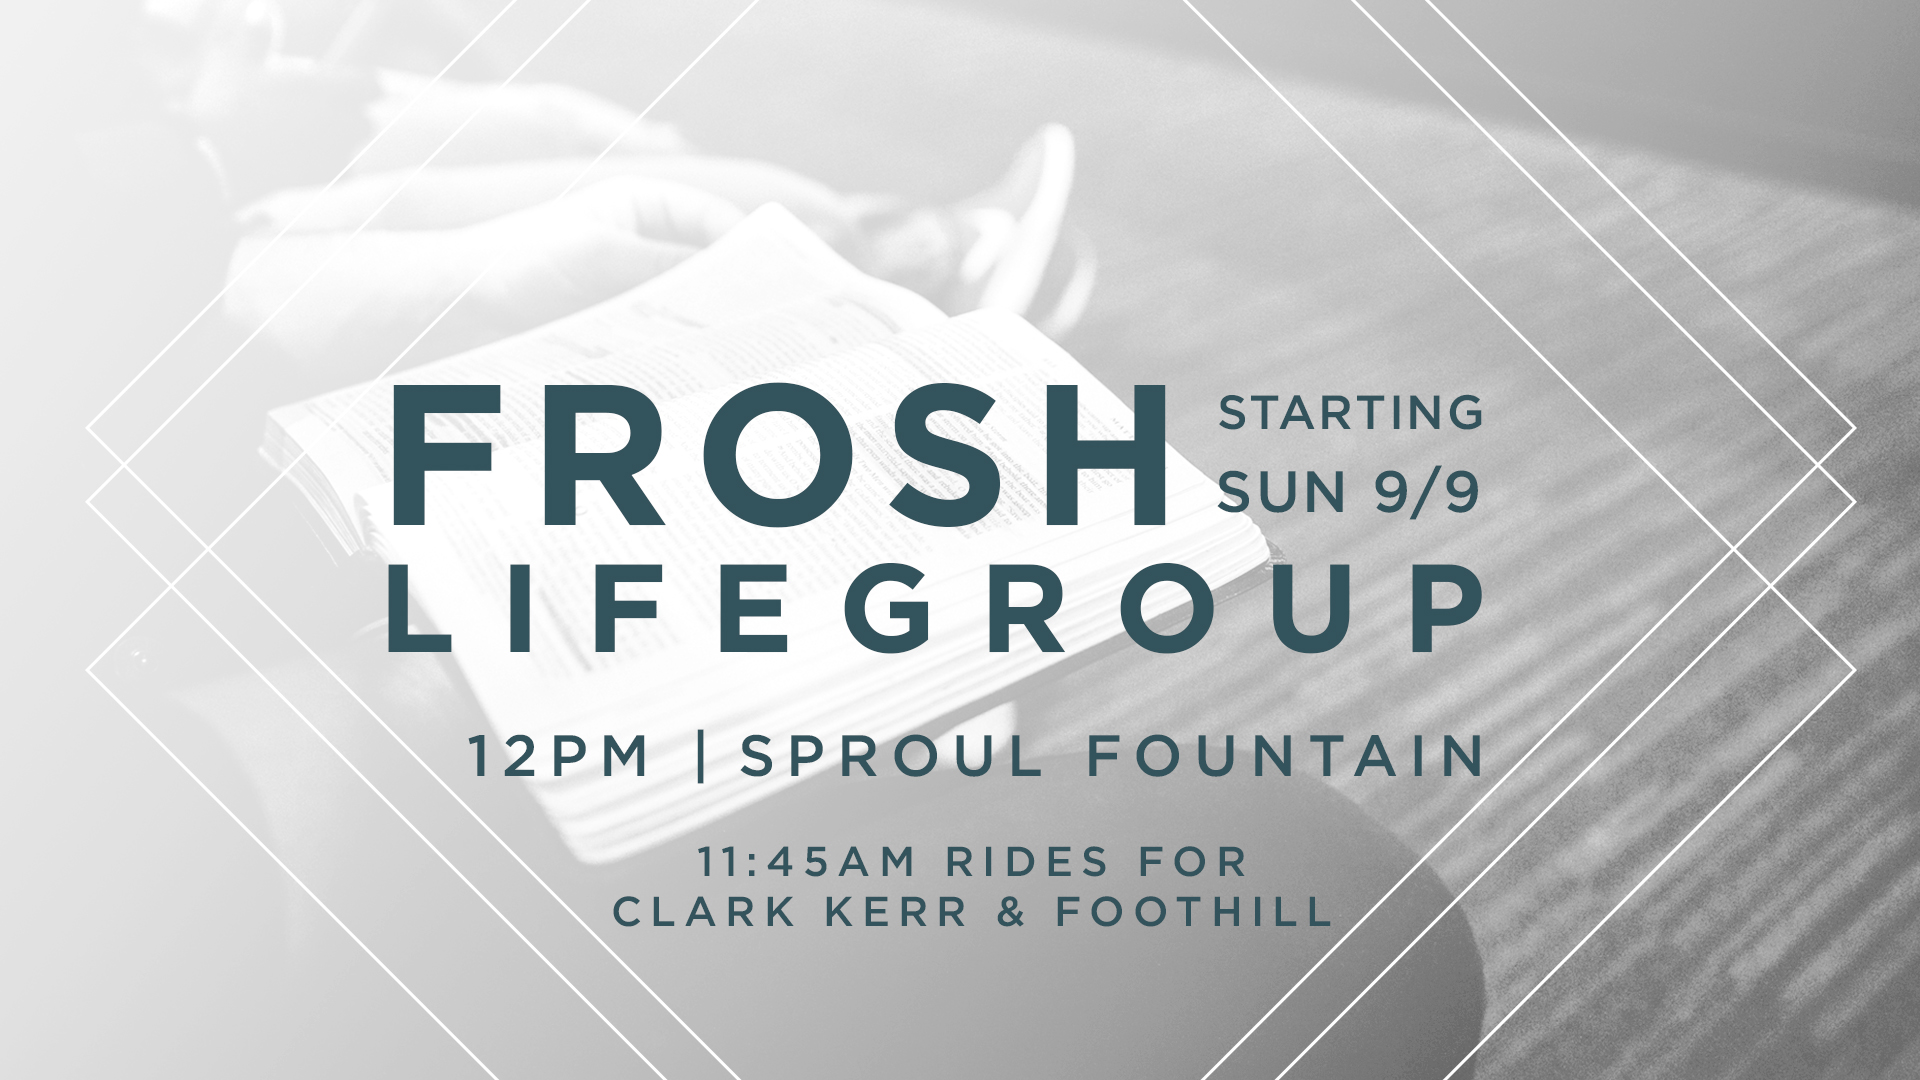 FroshLifegroup_20180909_splash.jpg